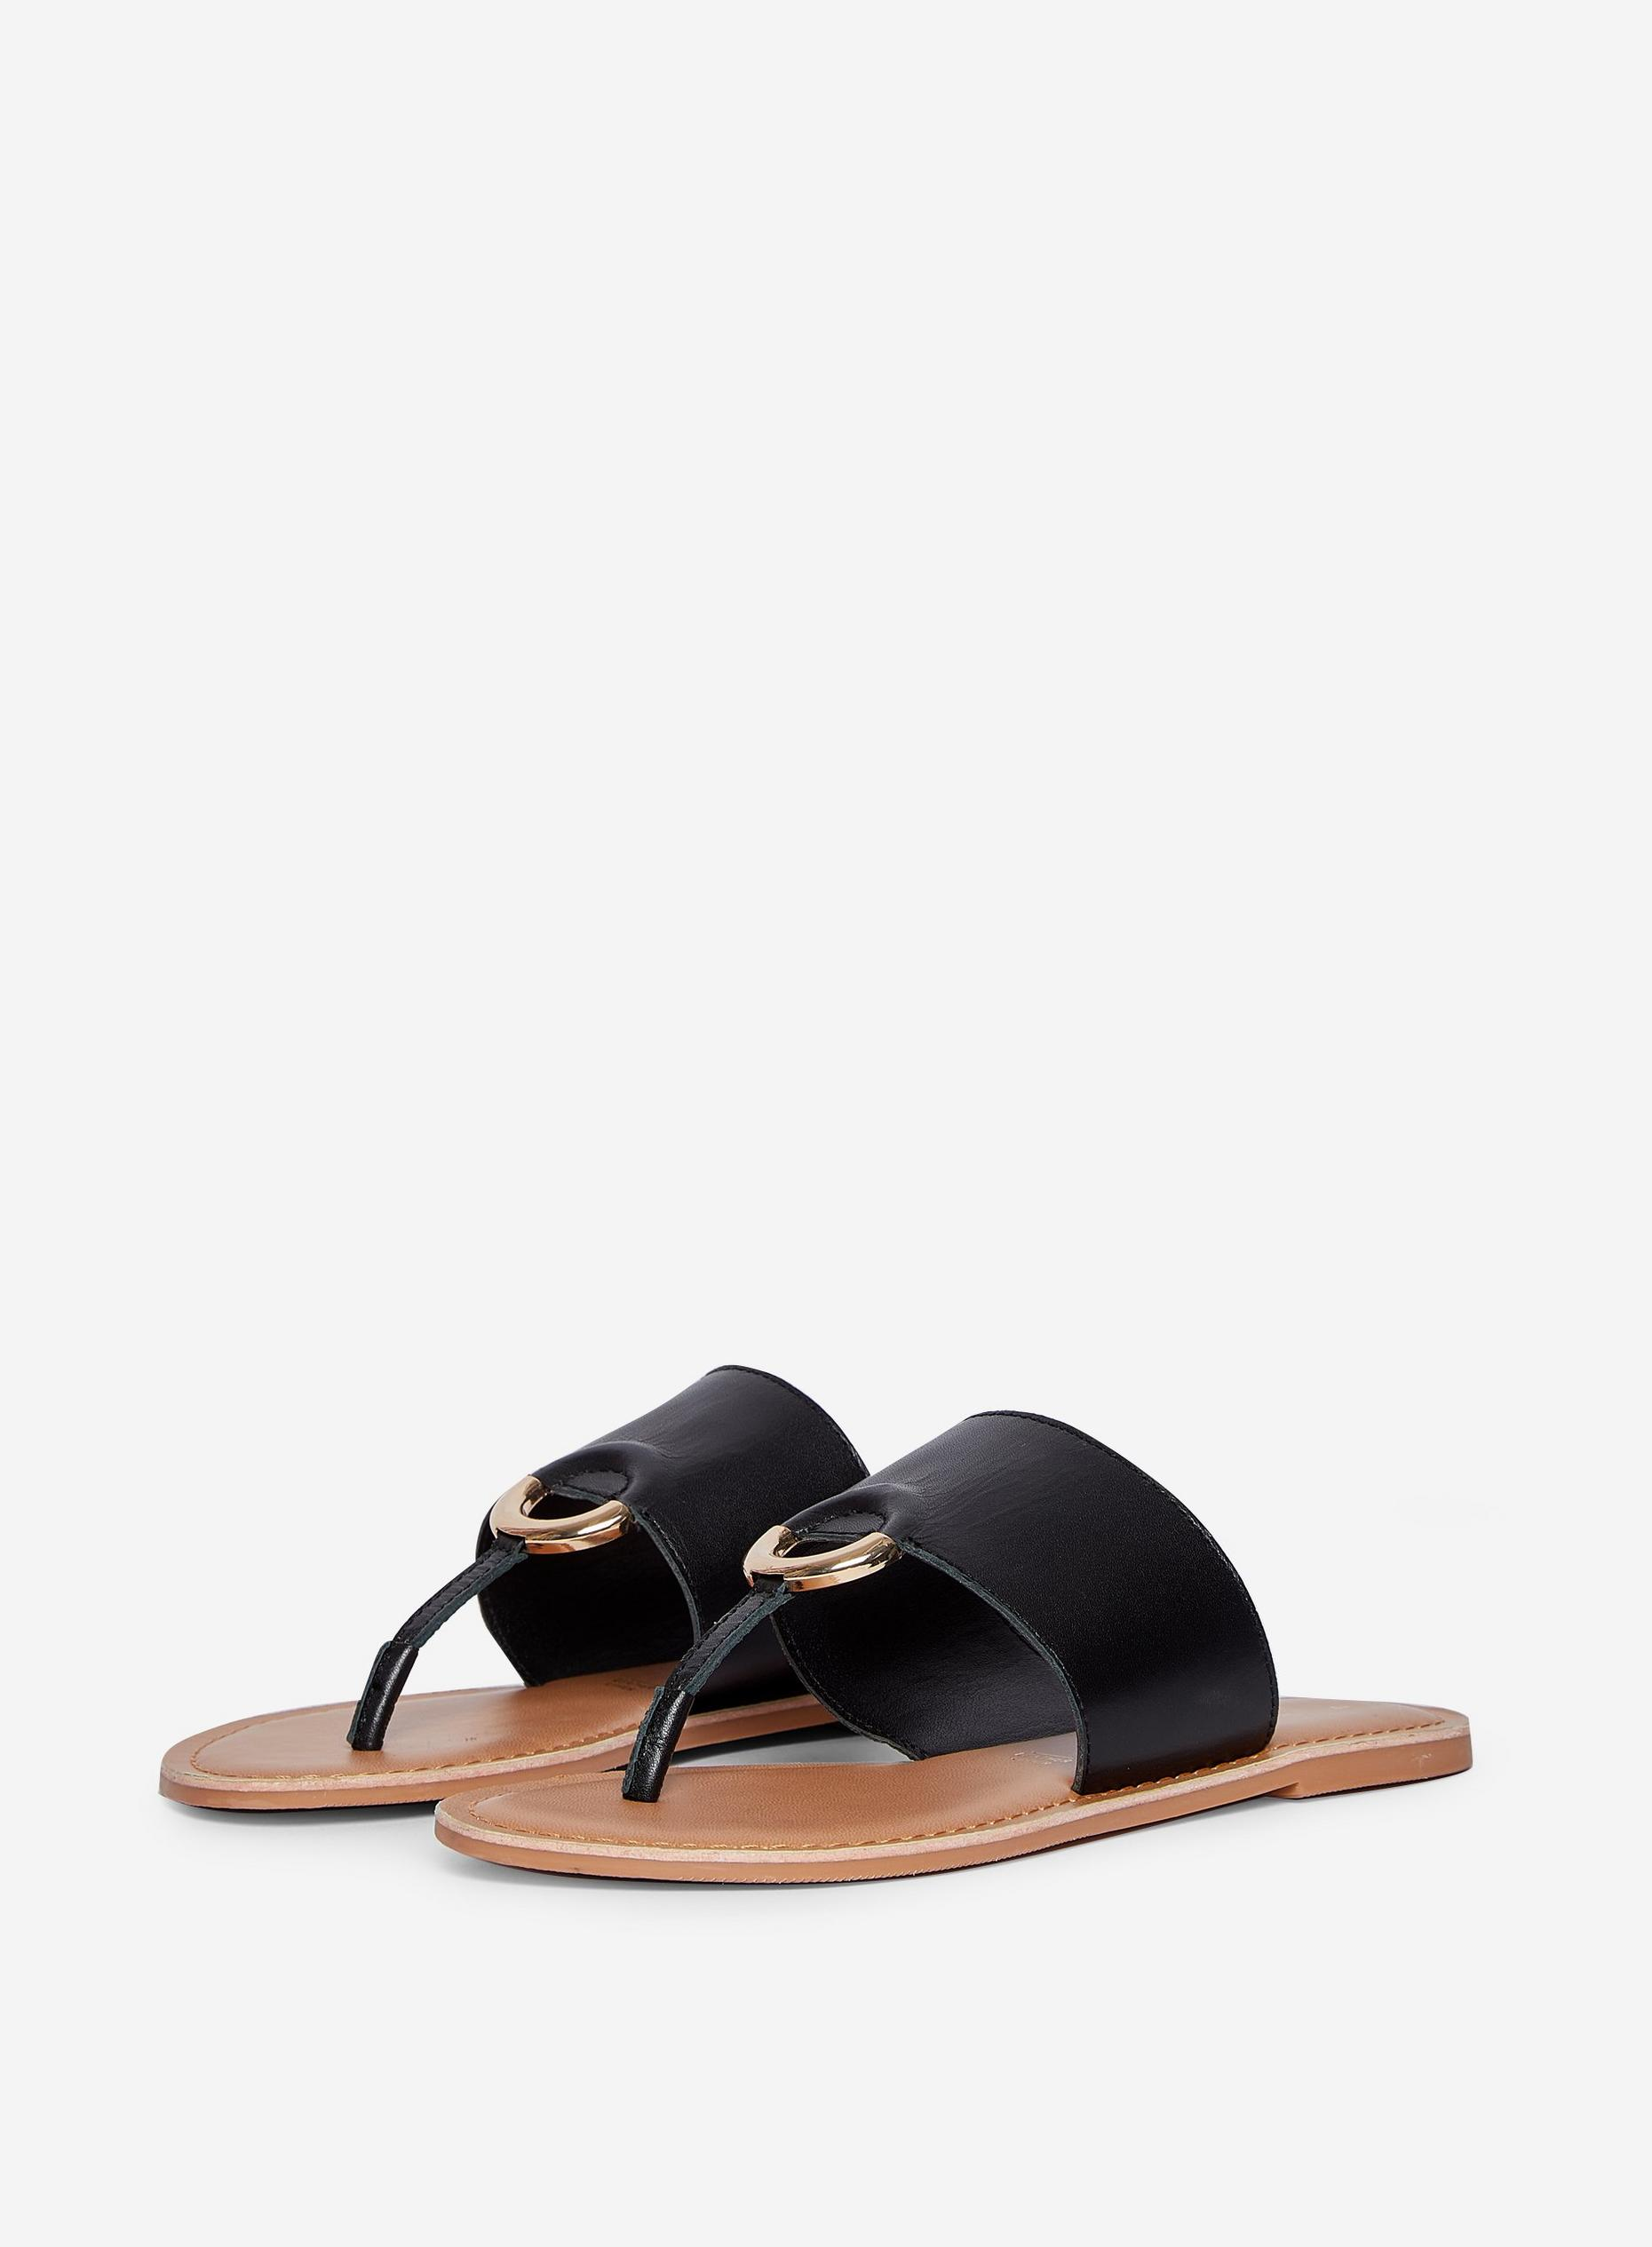 Black Jenner Leather Sandals